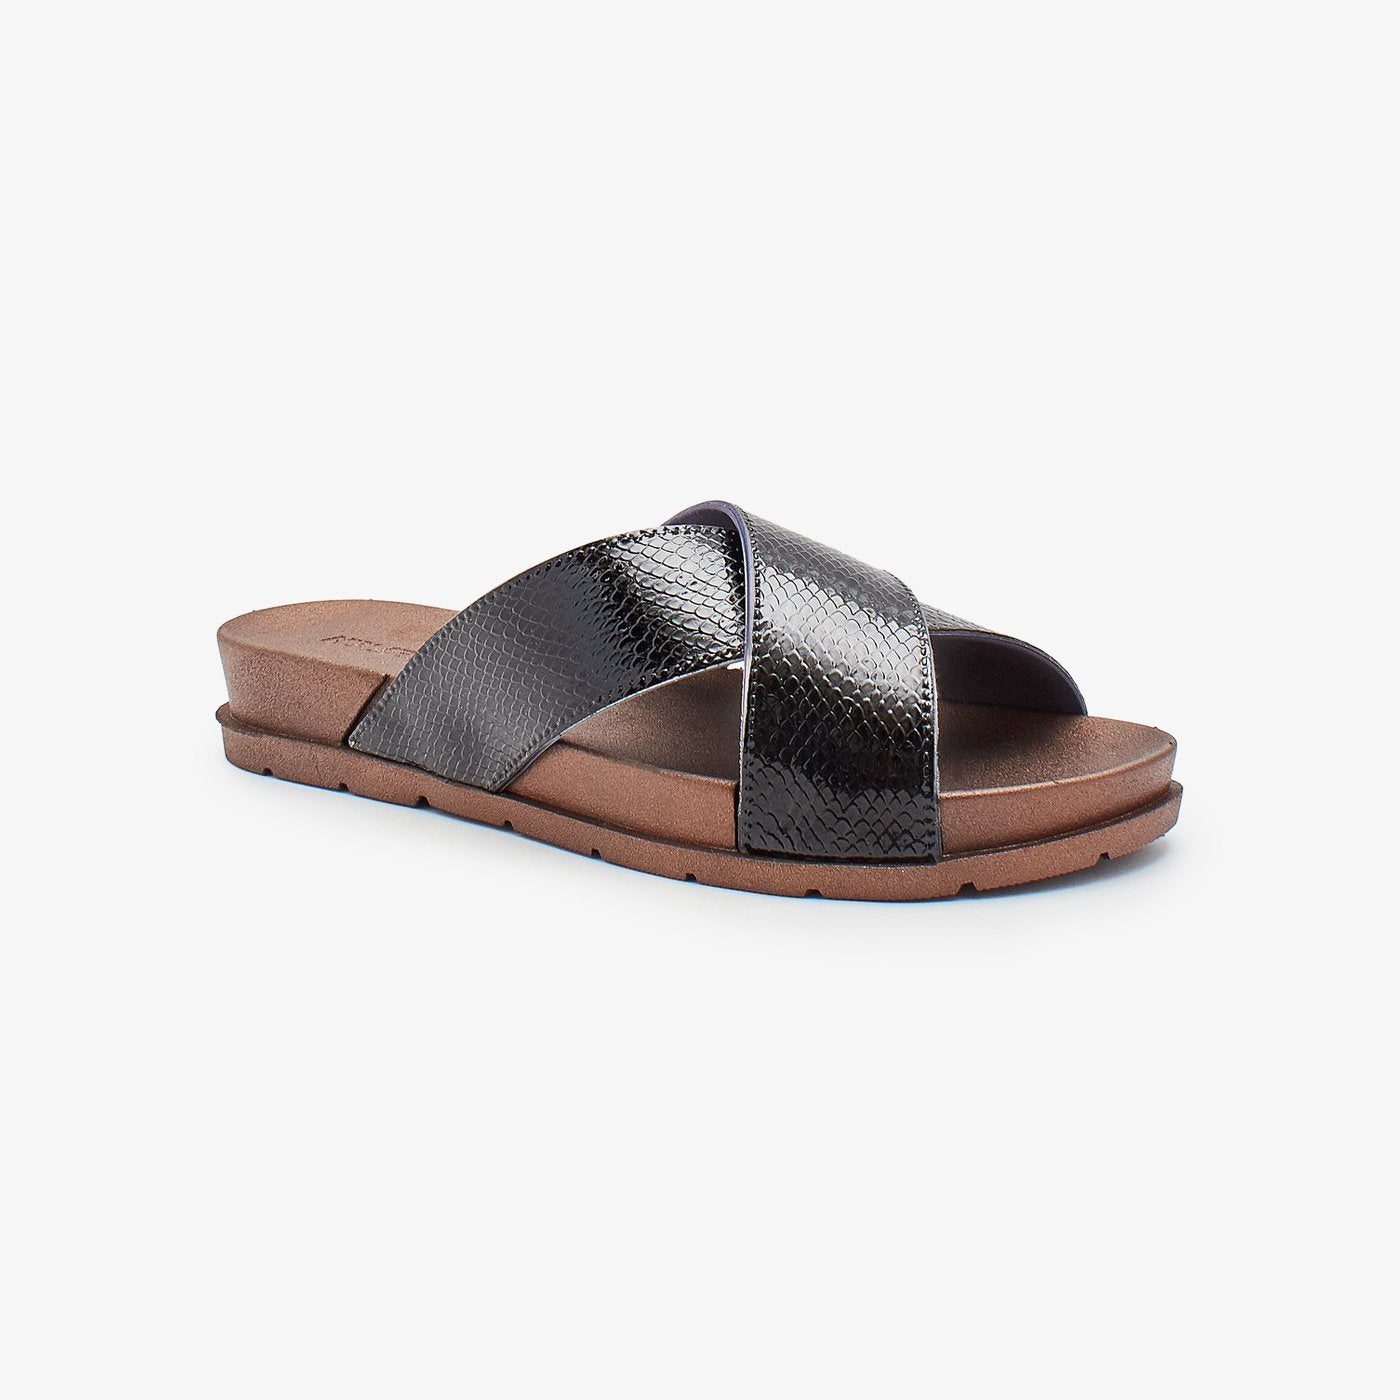 Cross Strap Chappals